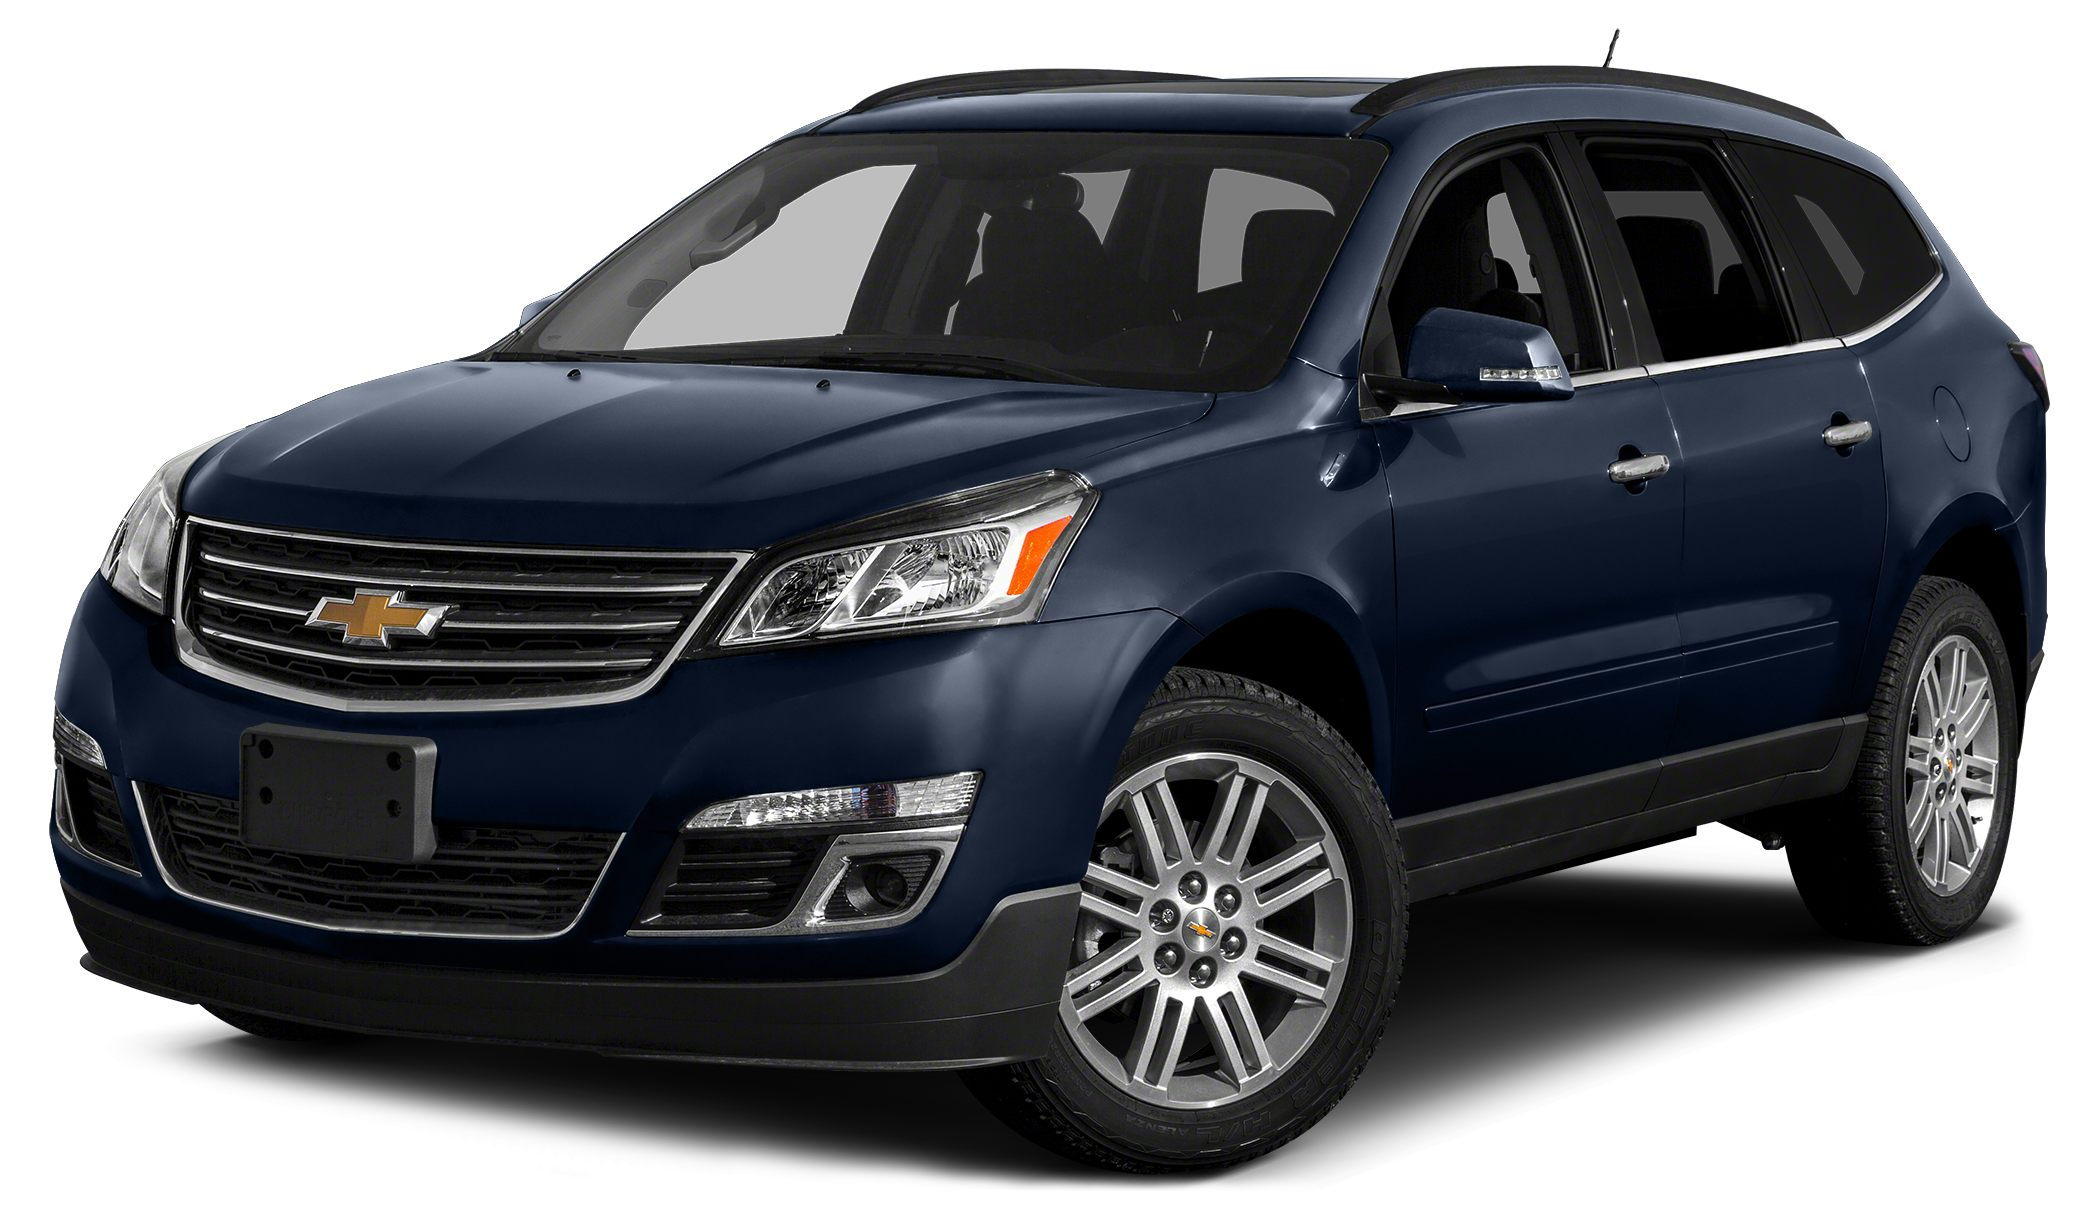 2015 Chevrolet Traverse 2LT Proudly serving manatee county for over 60 years offering Cars Trucks